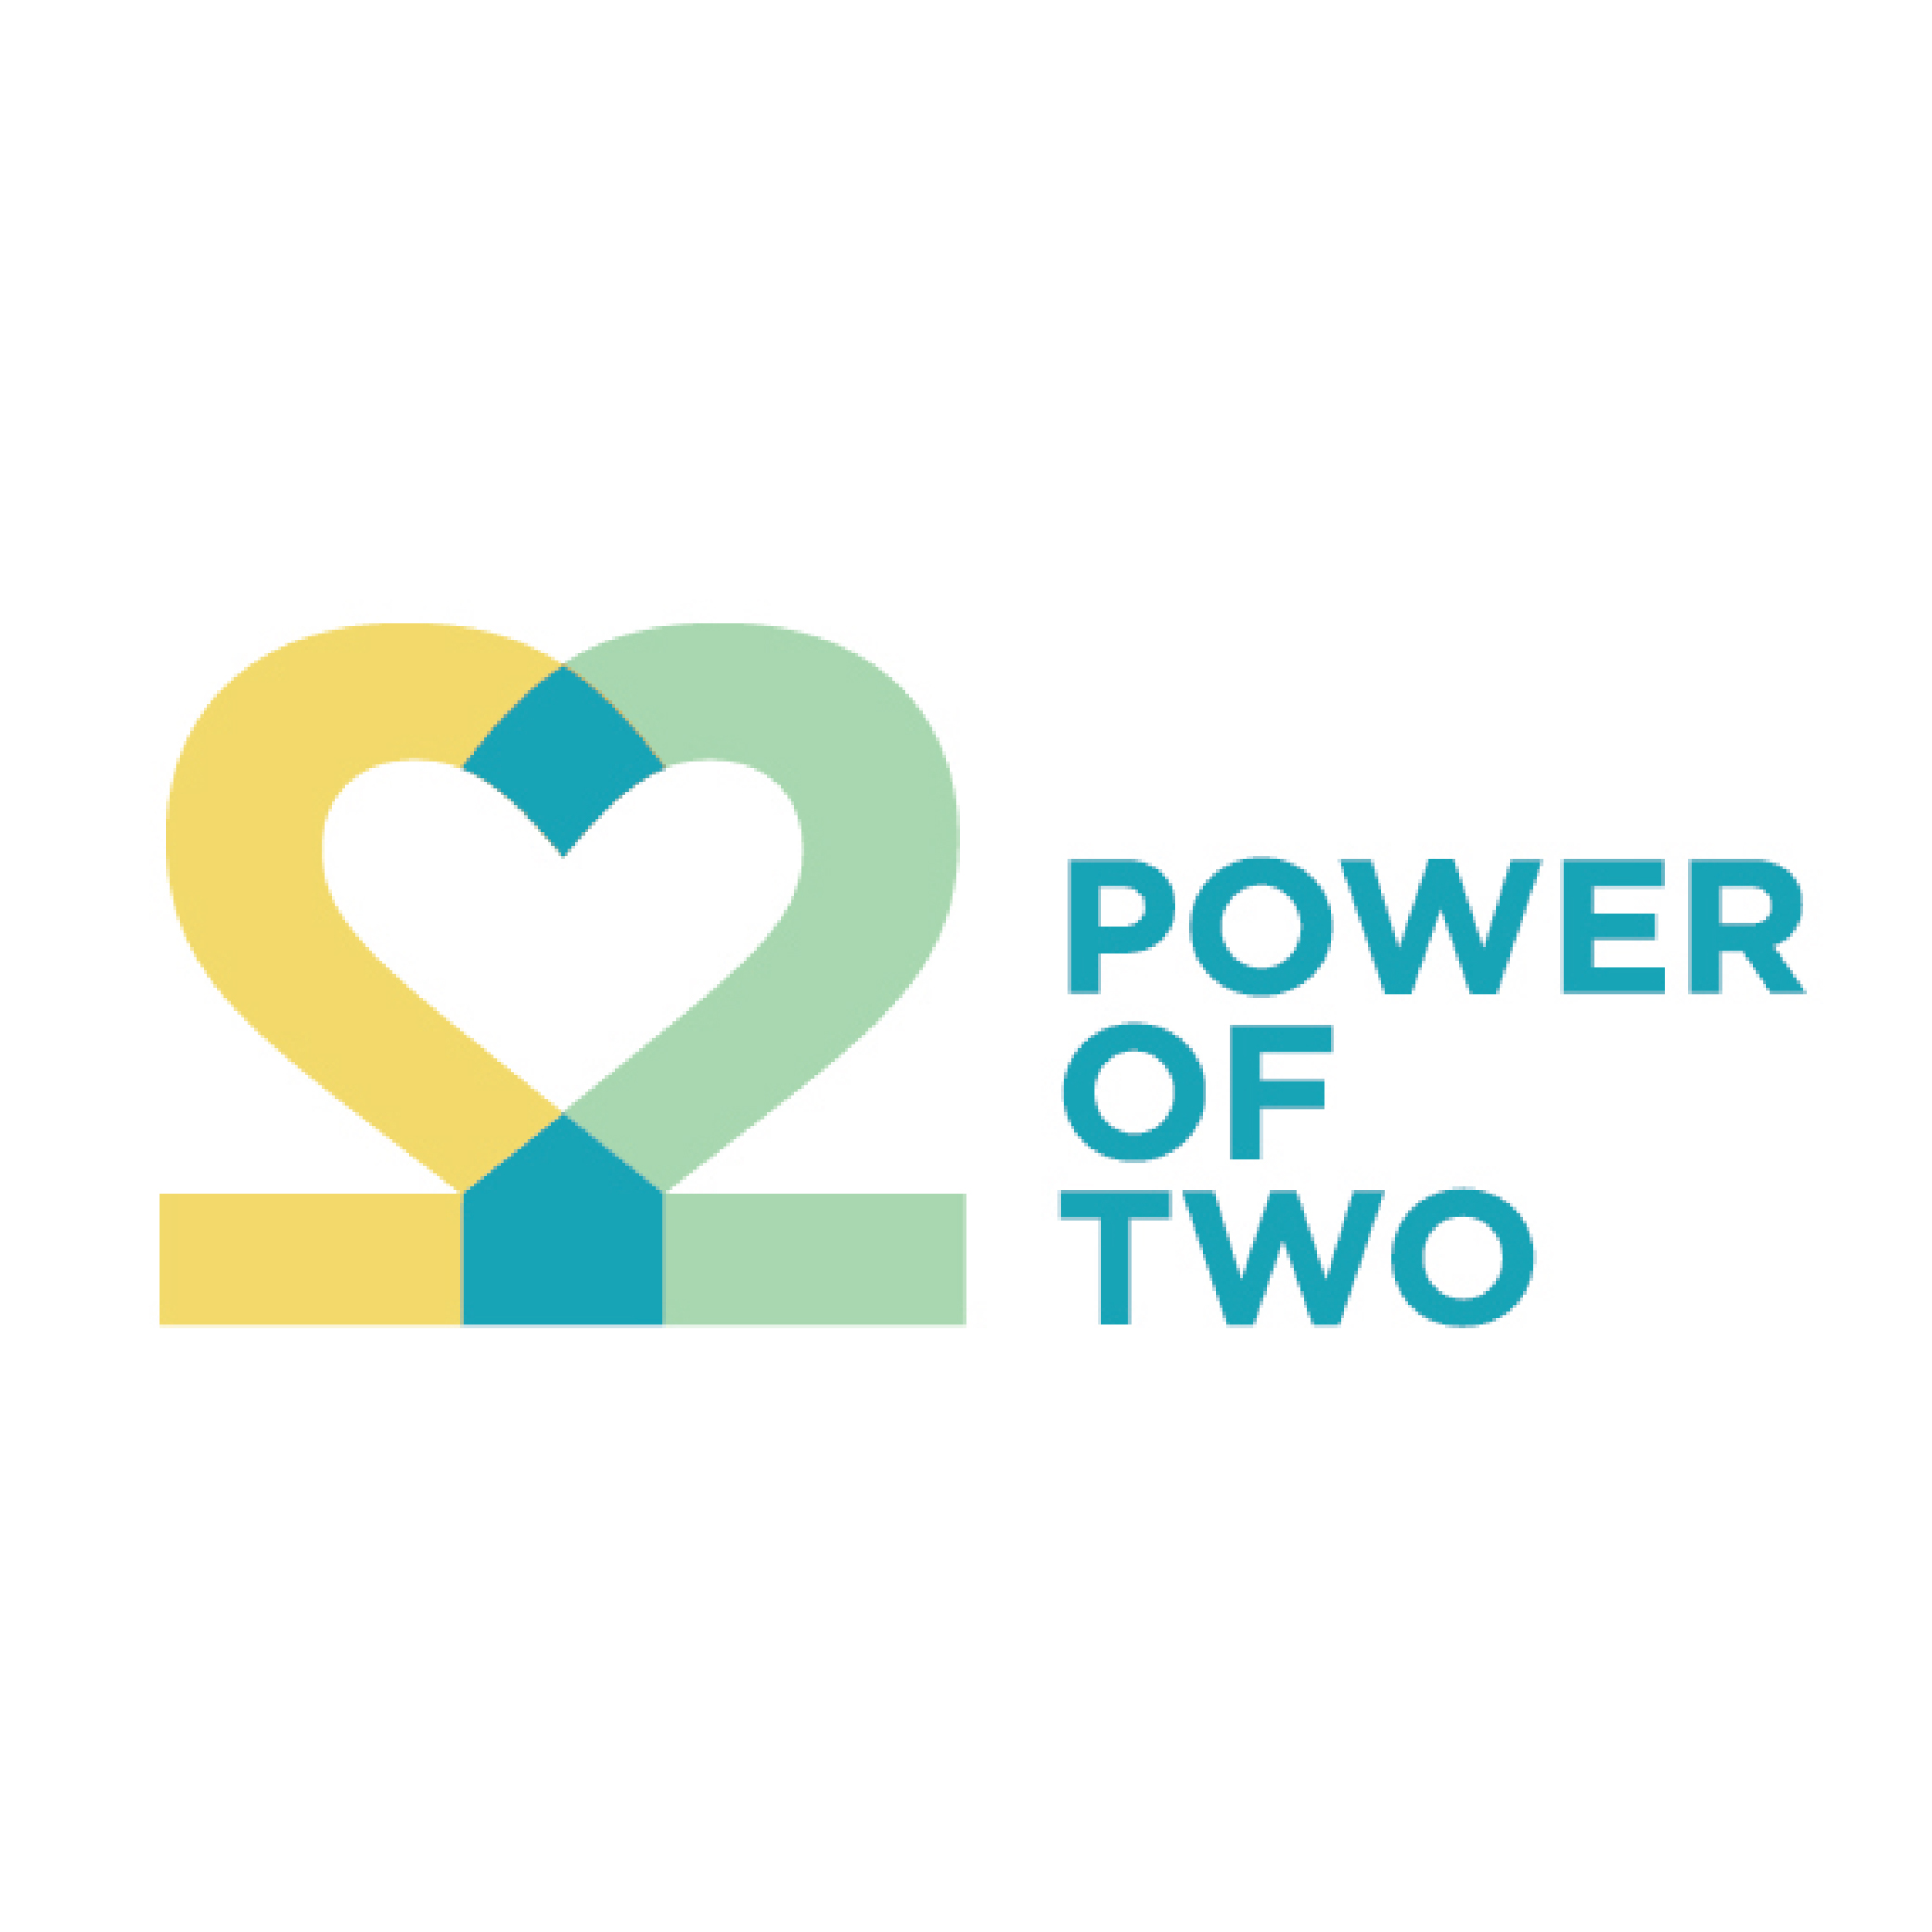 Power of Two-01.jpg